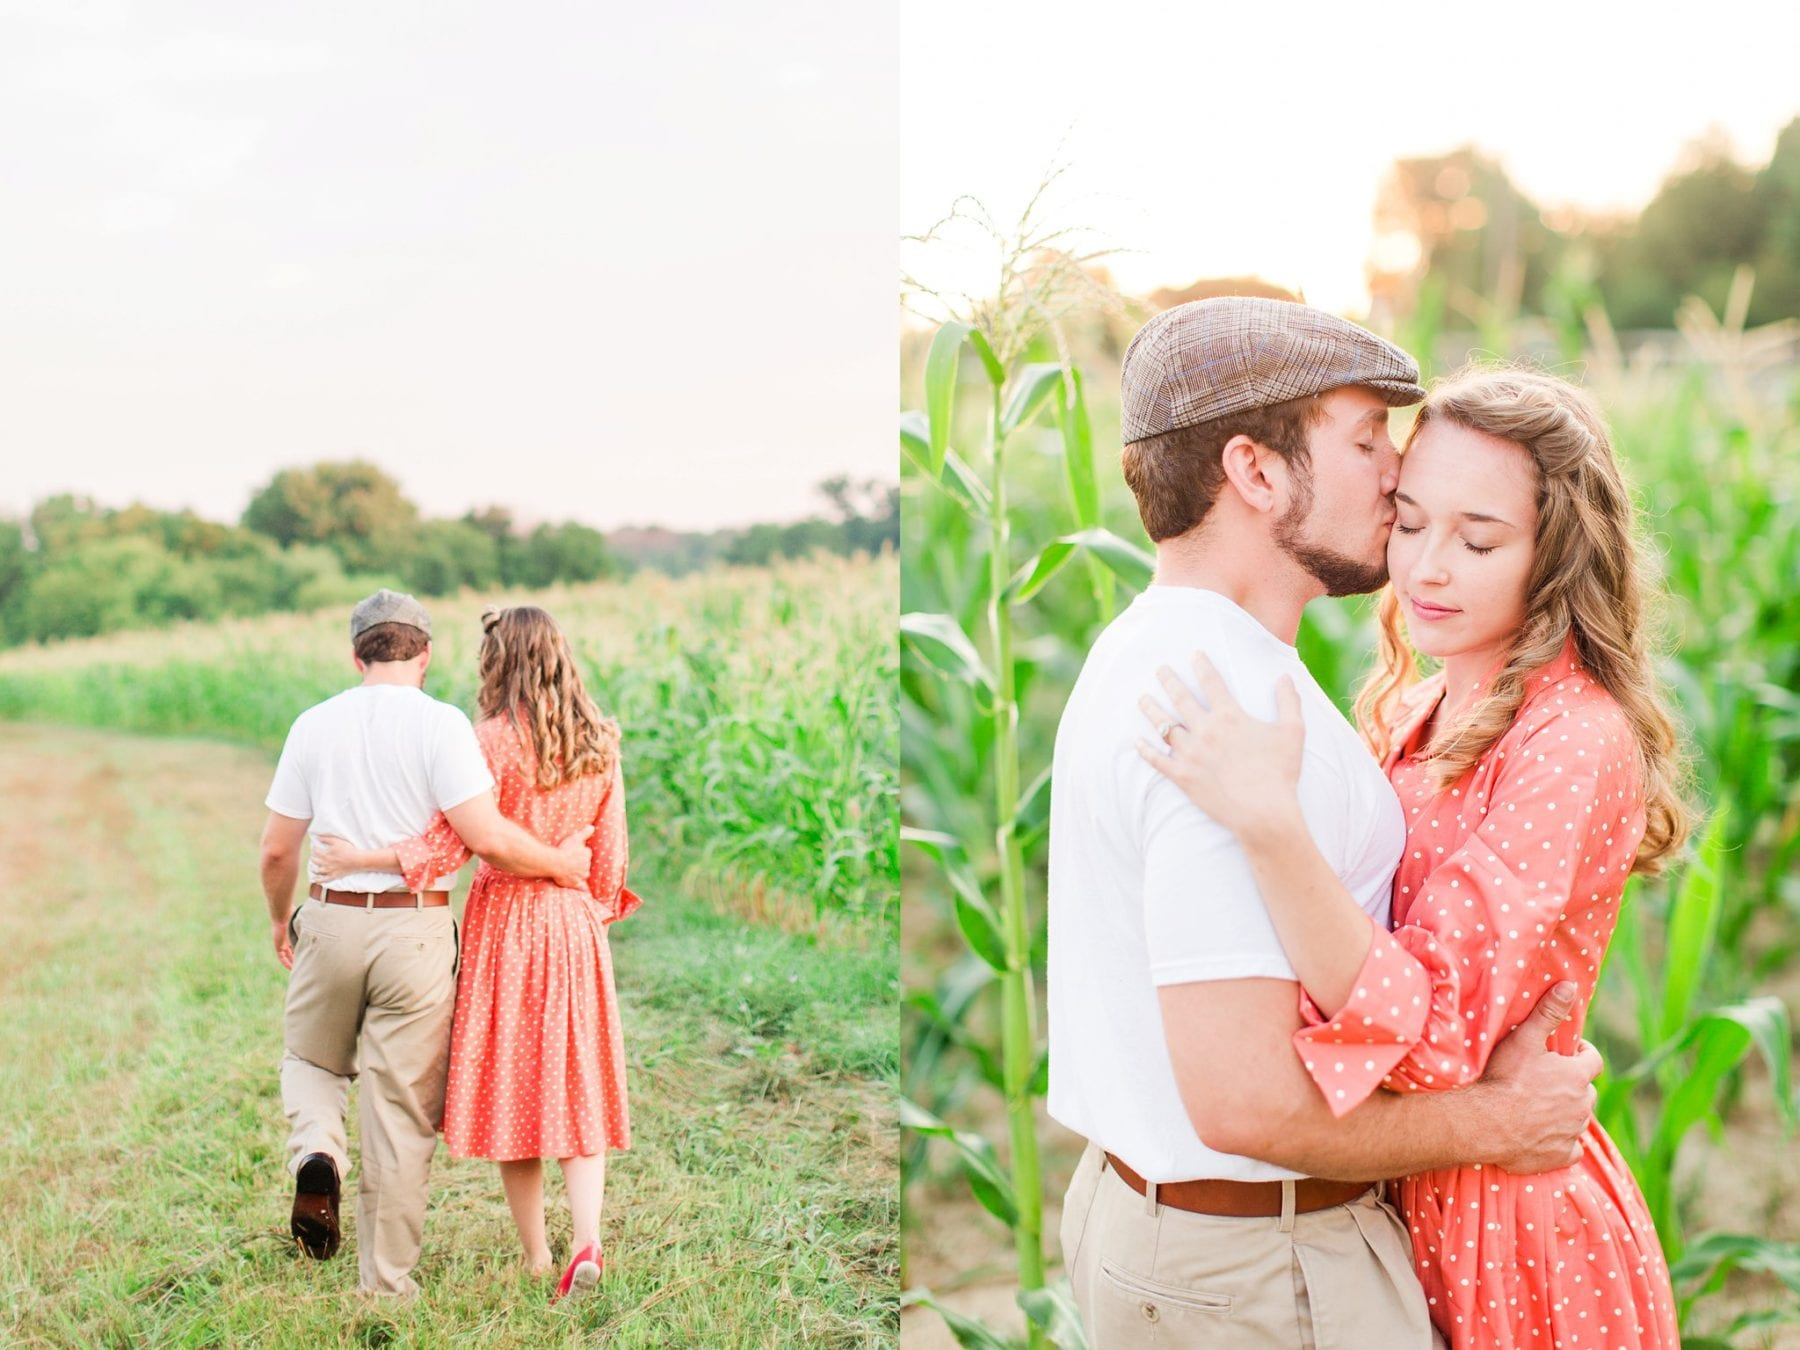 County Fair Engagement Photos Virginia Wedding Photographer Megan Kelsey Photography Samantha & Charles-5.JPG